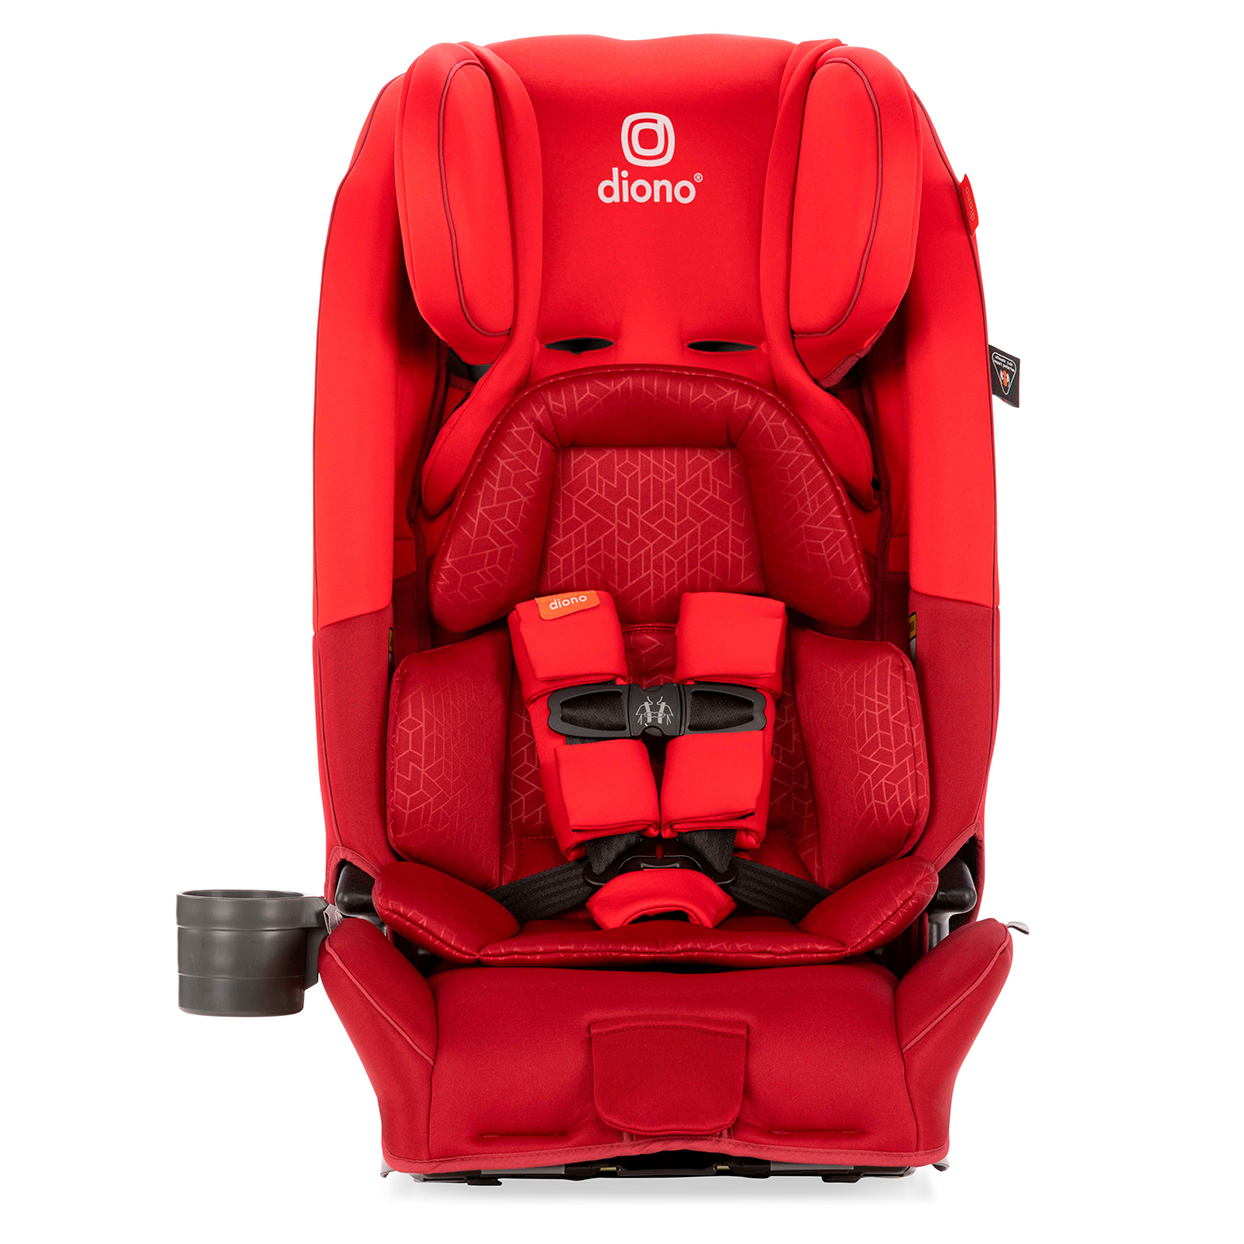 Best Slim Car Seat: Diono